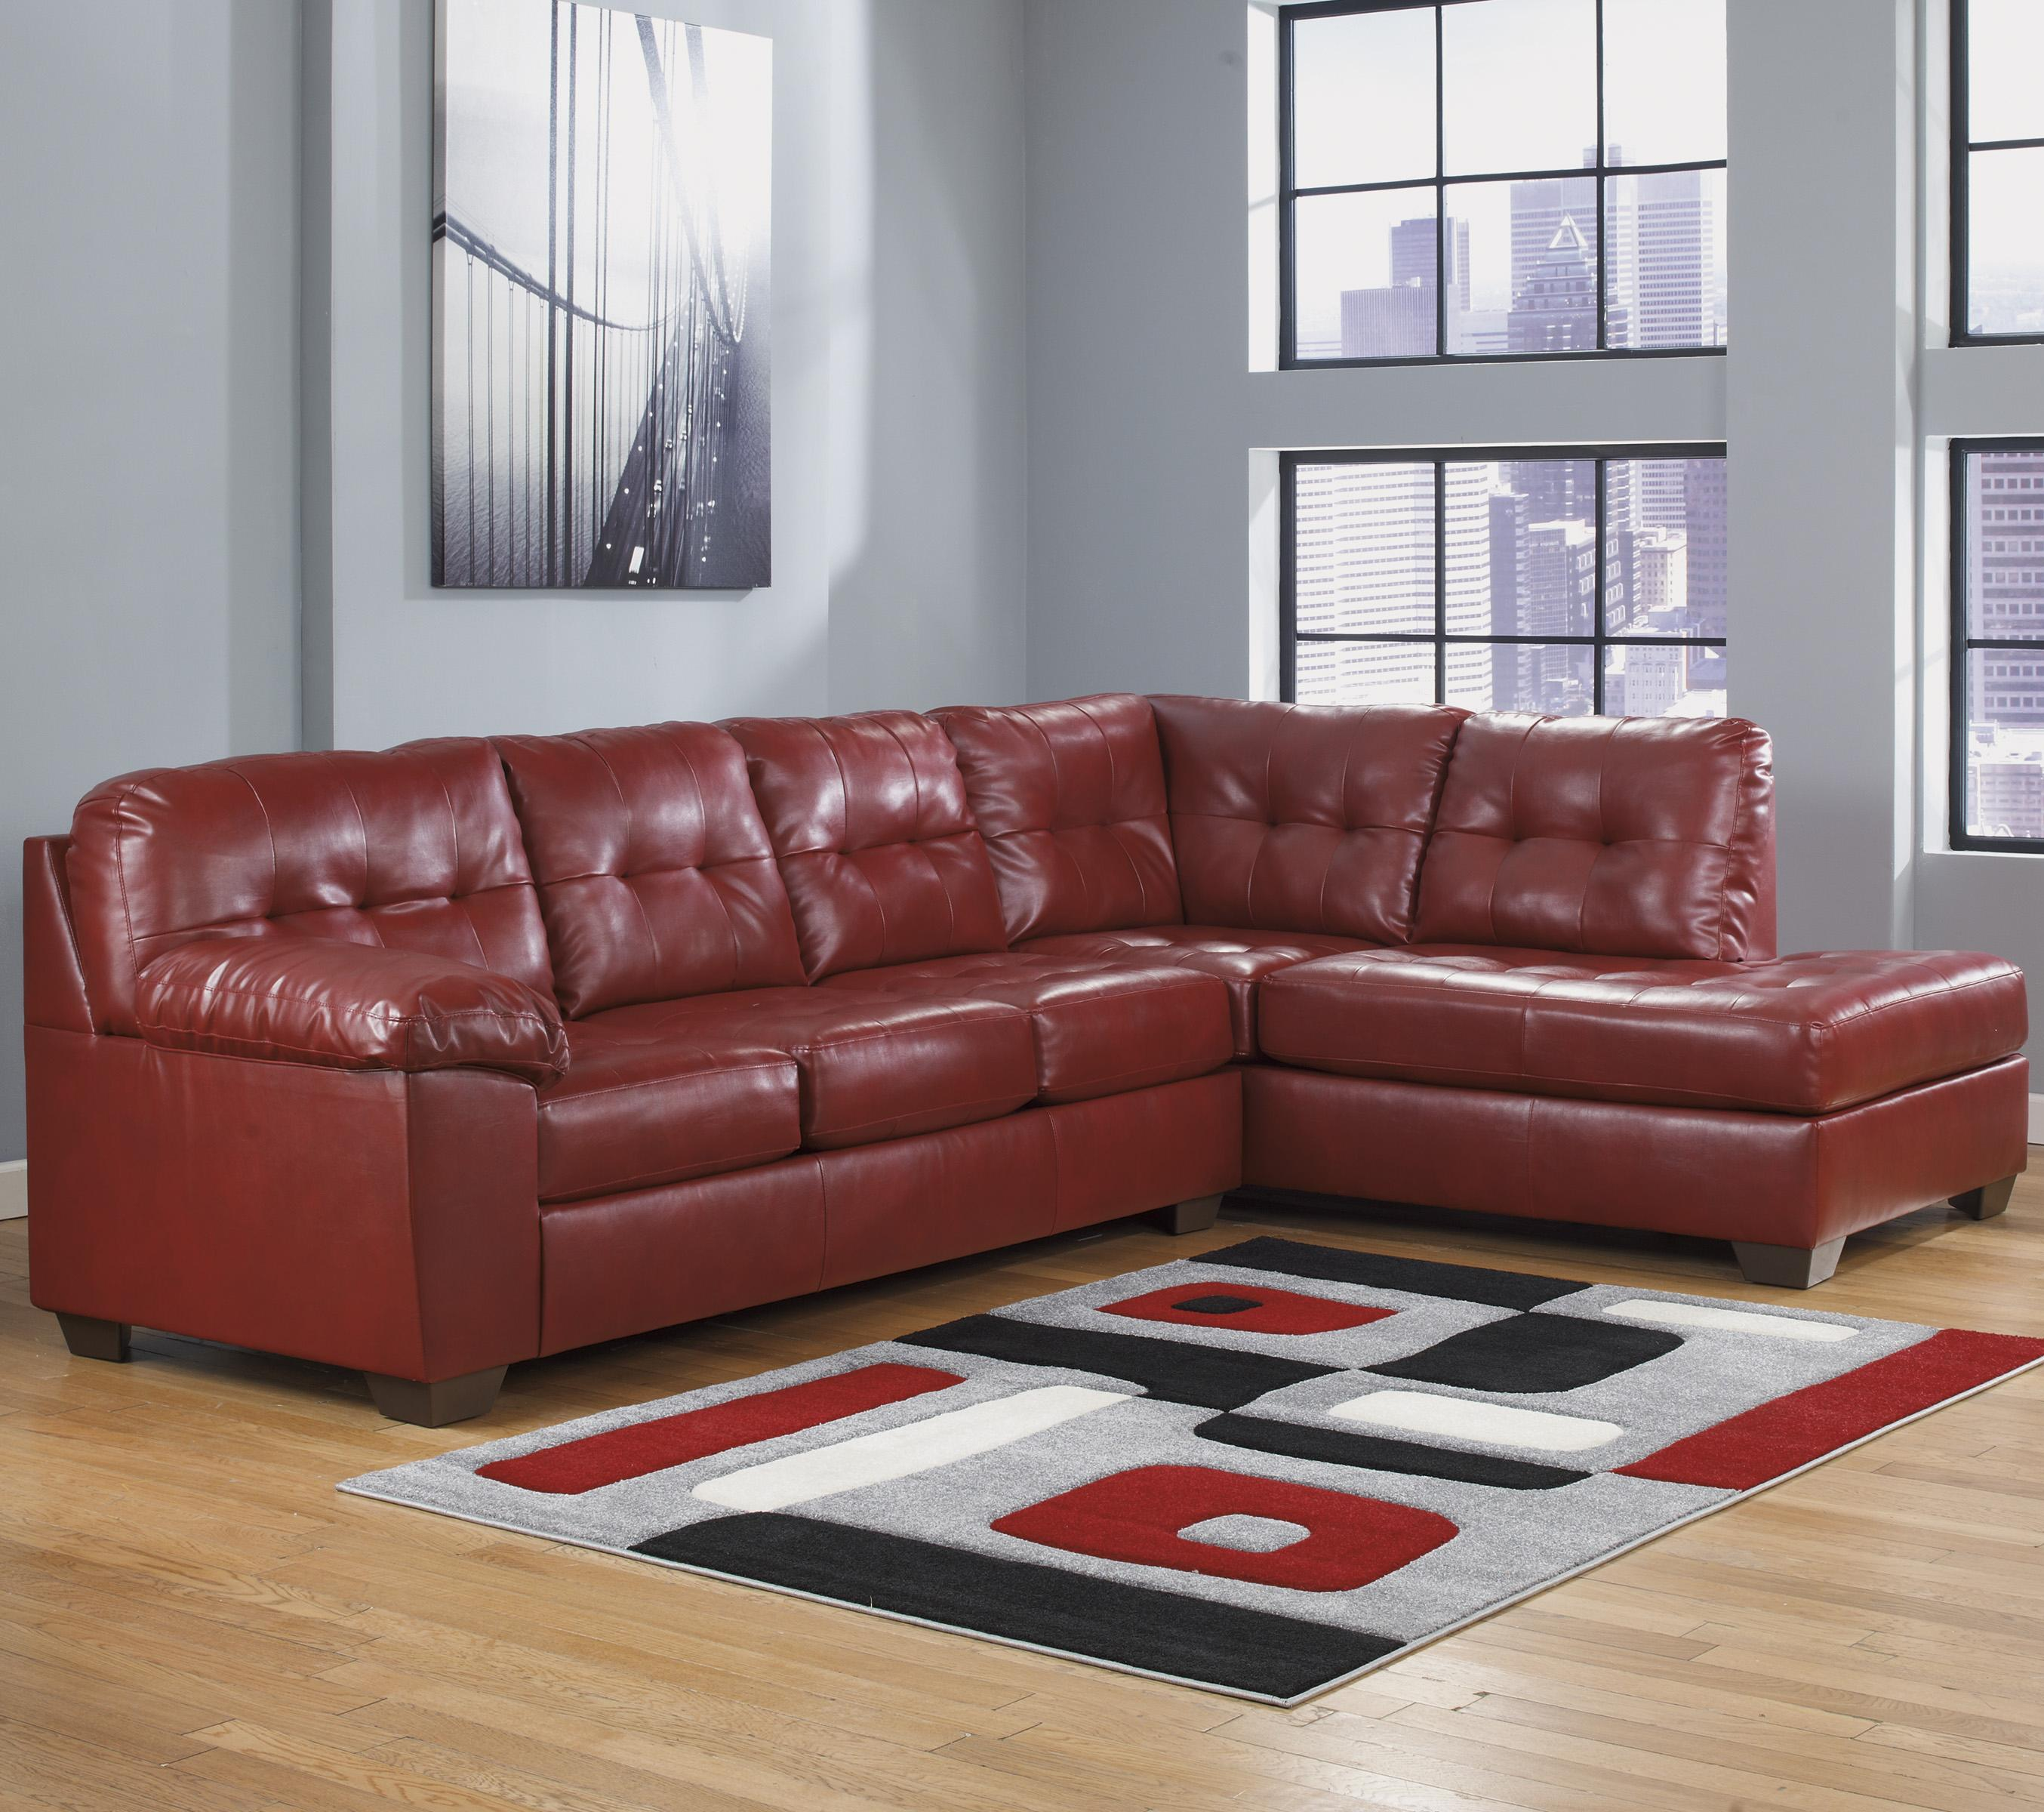 Faux leather sectional w right chaise tufting by for Ashley leather sectional with chaise